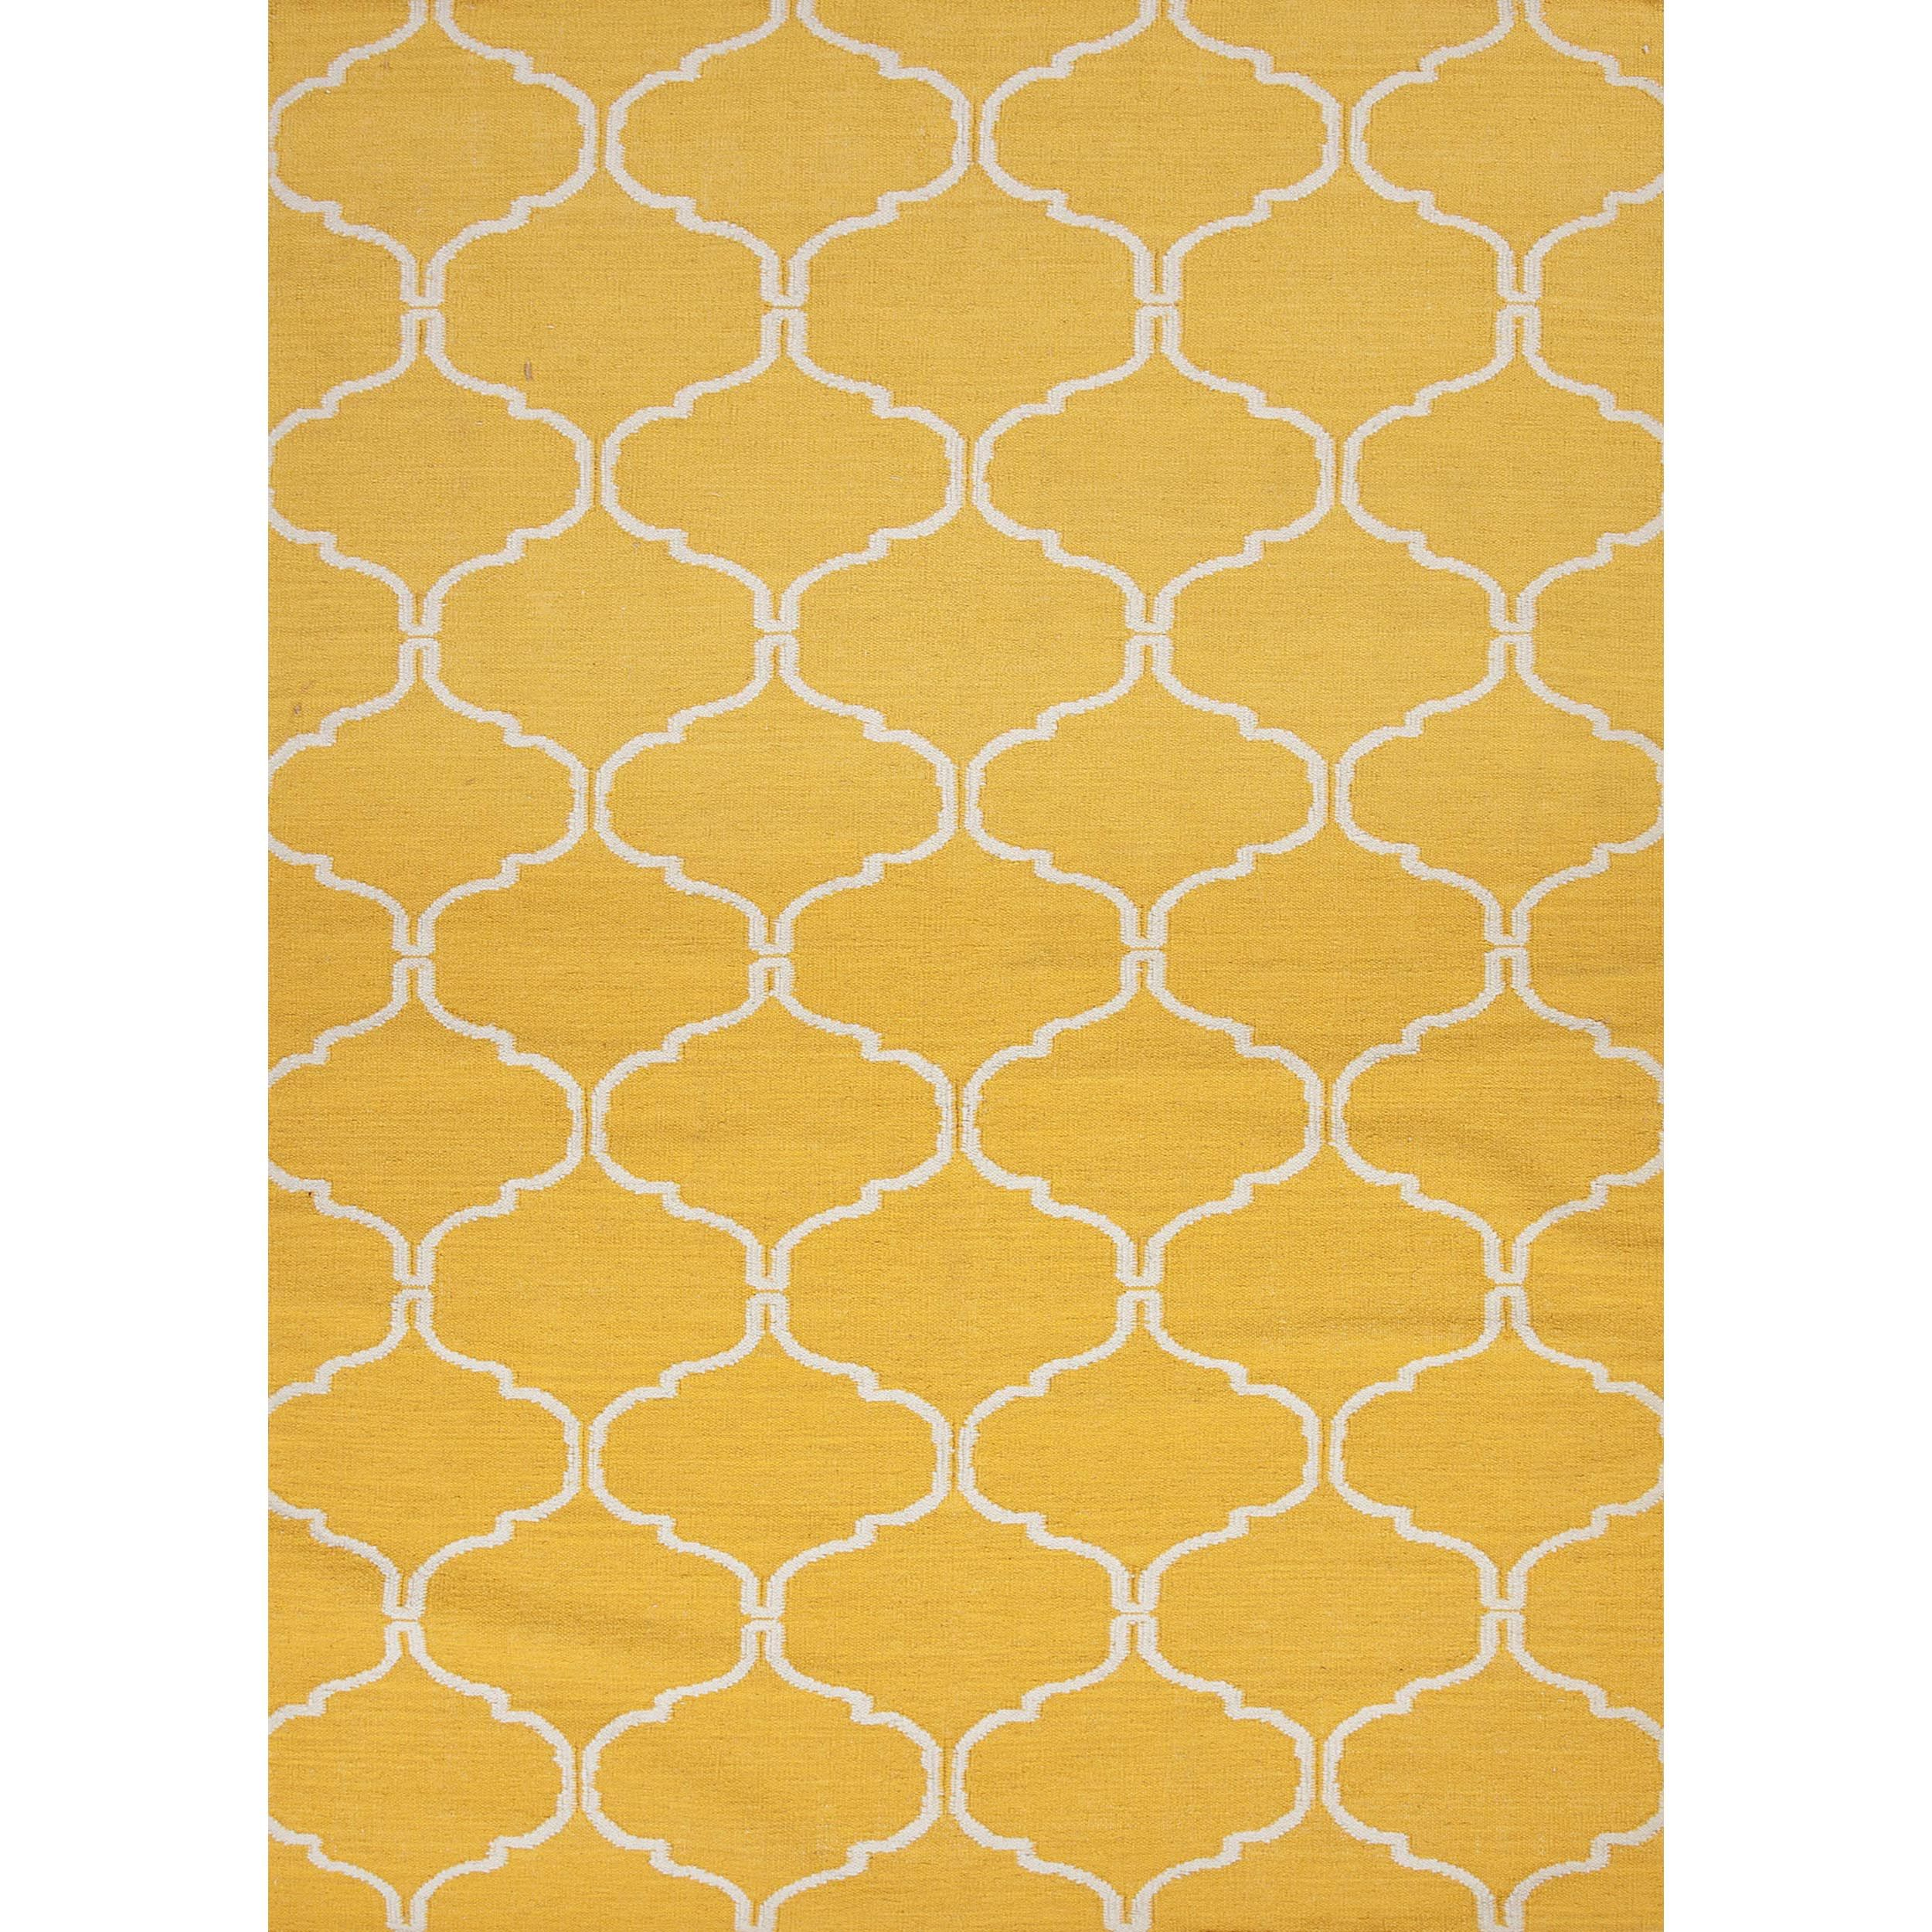 An interesting pattern of geometrics in a simple flat weave designs this wool rug. Mango yellow looks modern and fresh and very contemporary.